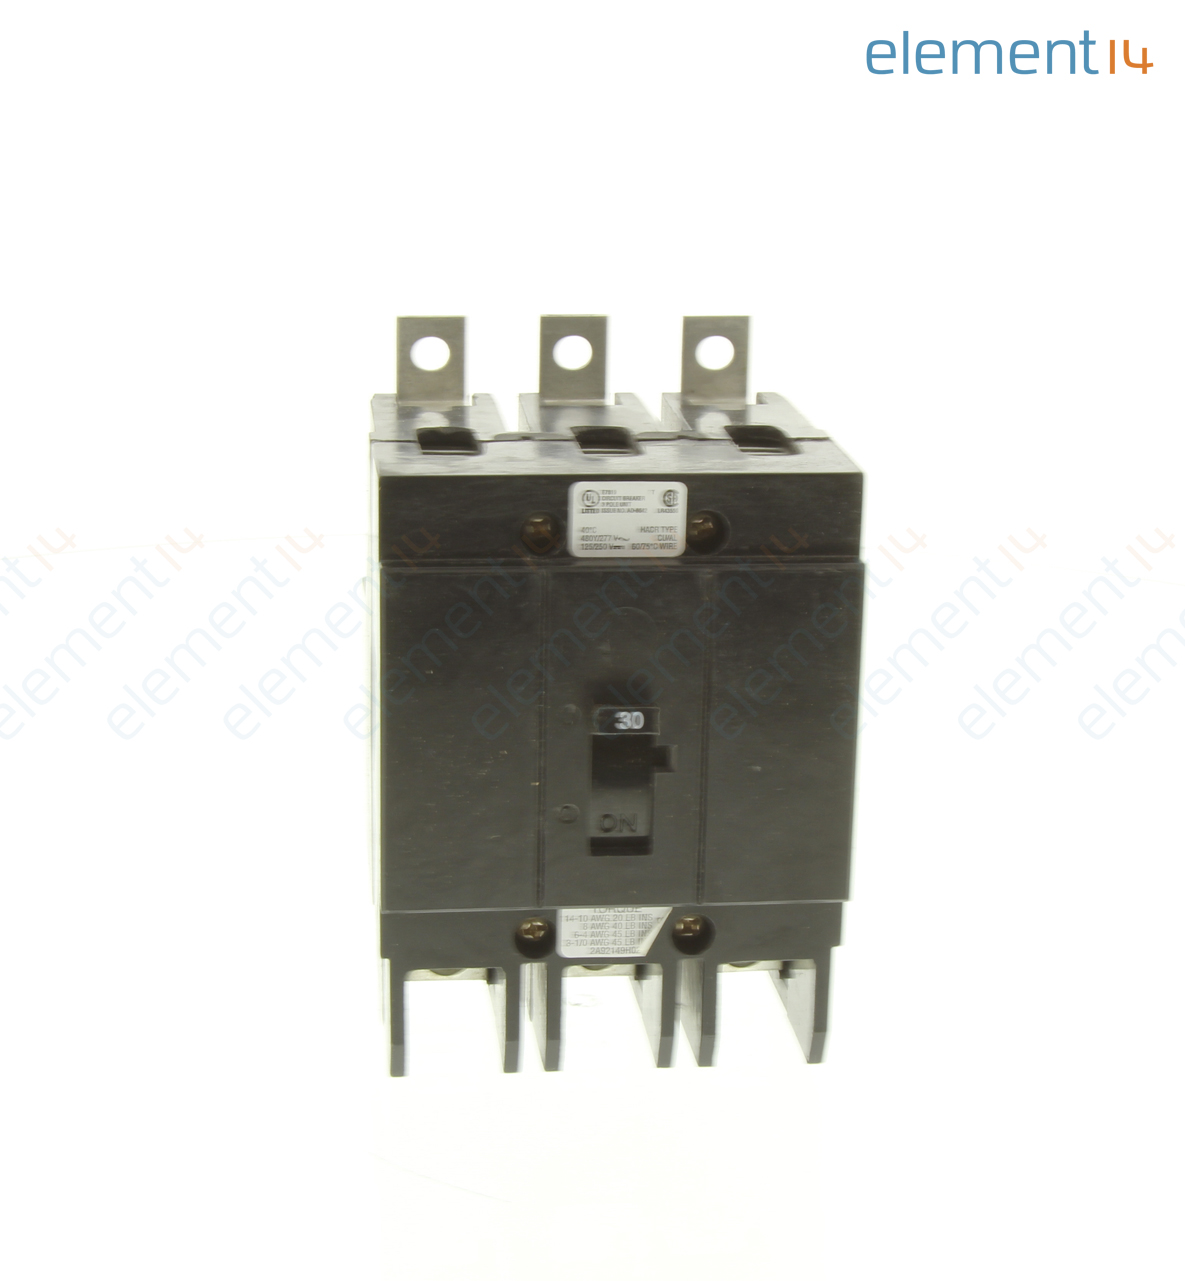 Ghb3030 Eaton Cutler Hammer Thermal Magnetic Circuit Breaker Ghb Add A To Compare